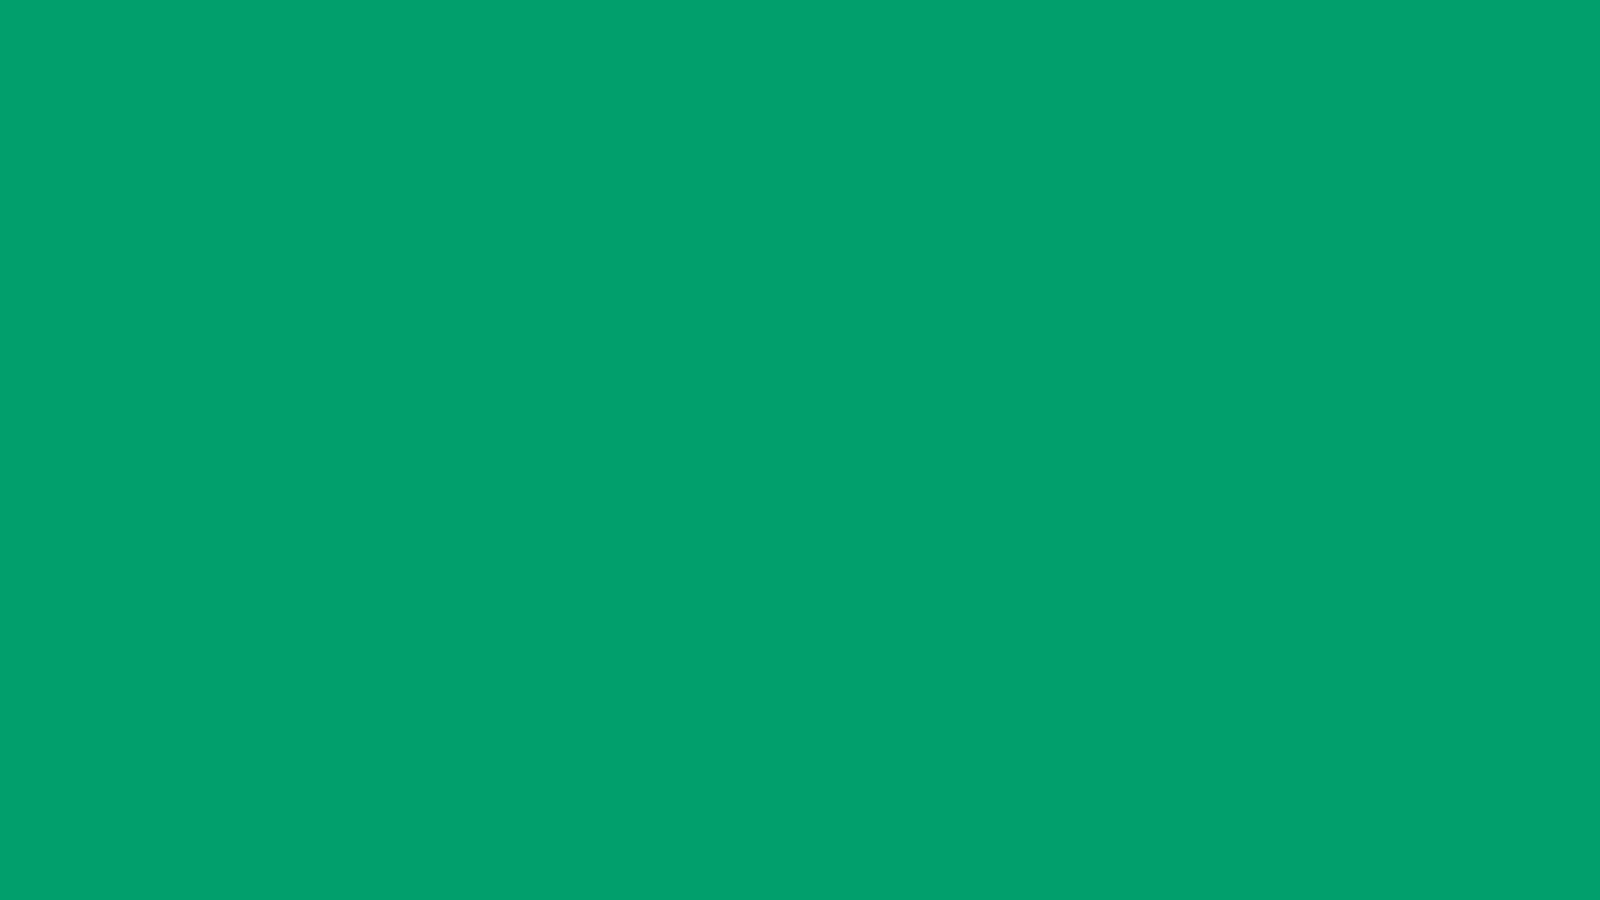 1600x900 Green NCS Solid Color Background